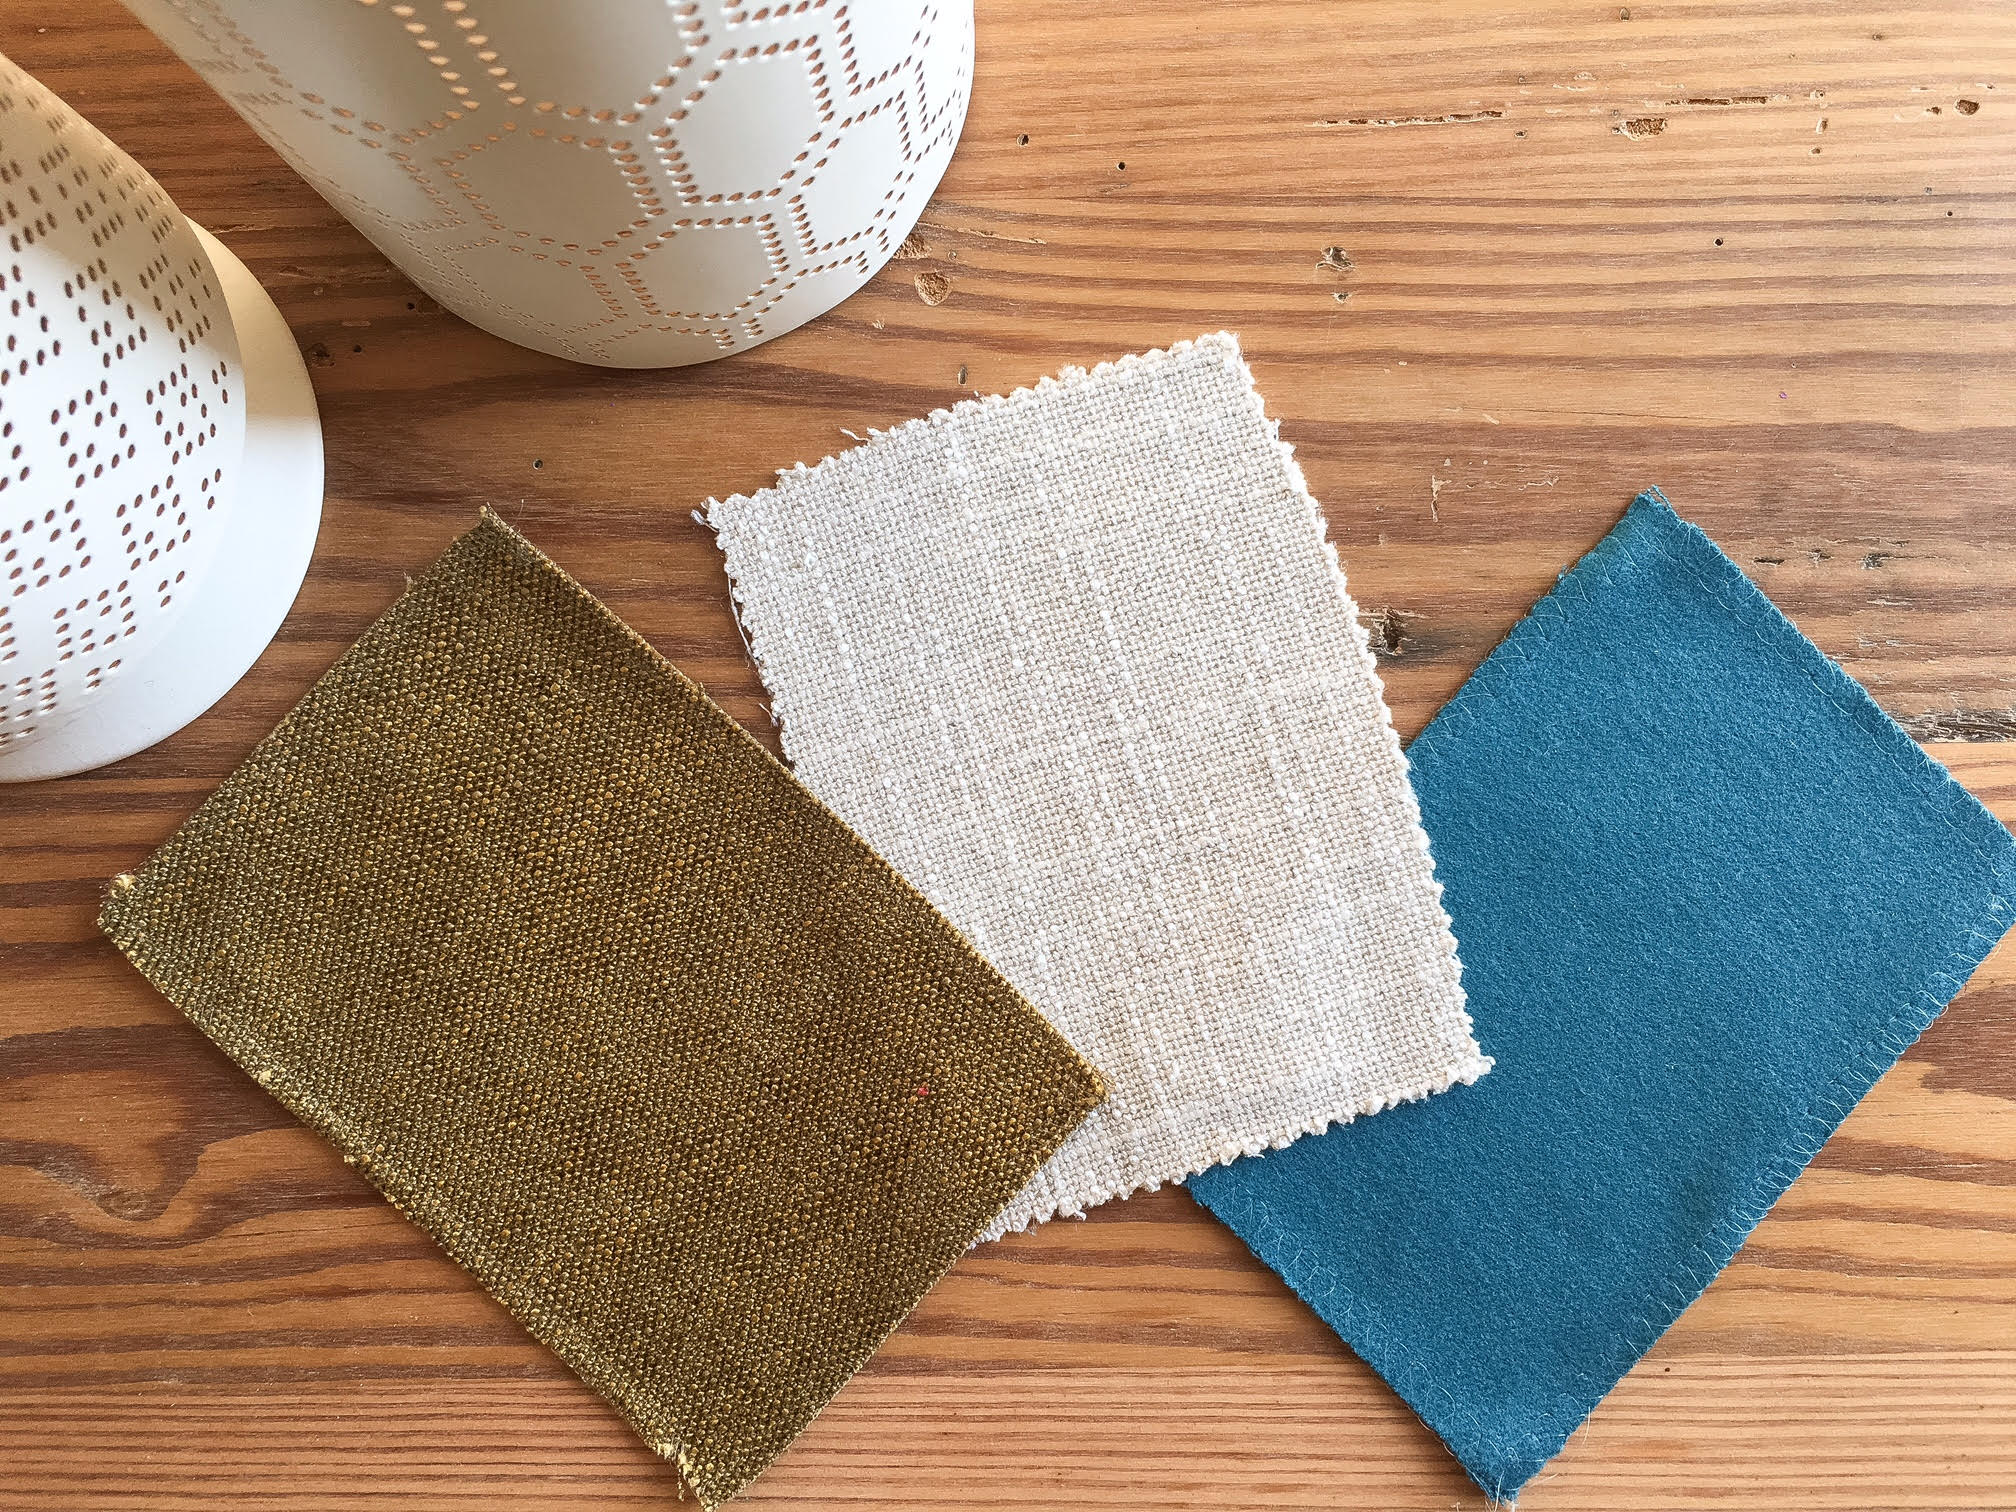 1,2 or 3? Help us pick your favorite! Currently crushing on all three fabrics!       Here are some of my favorites pieces...